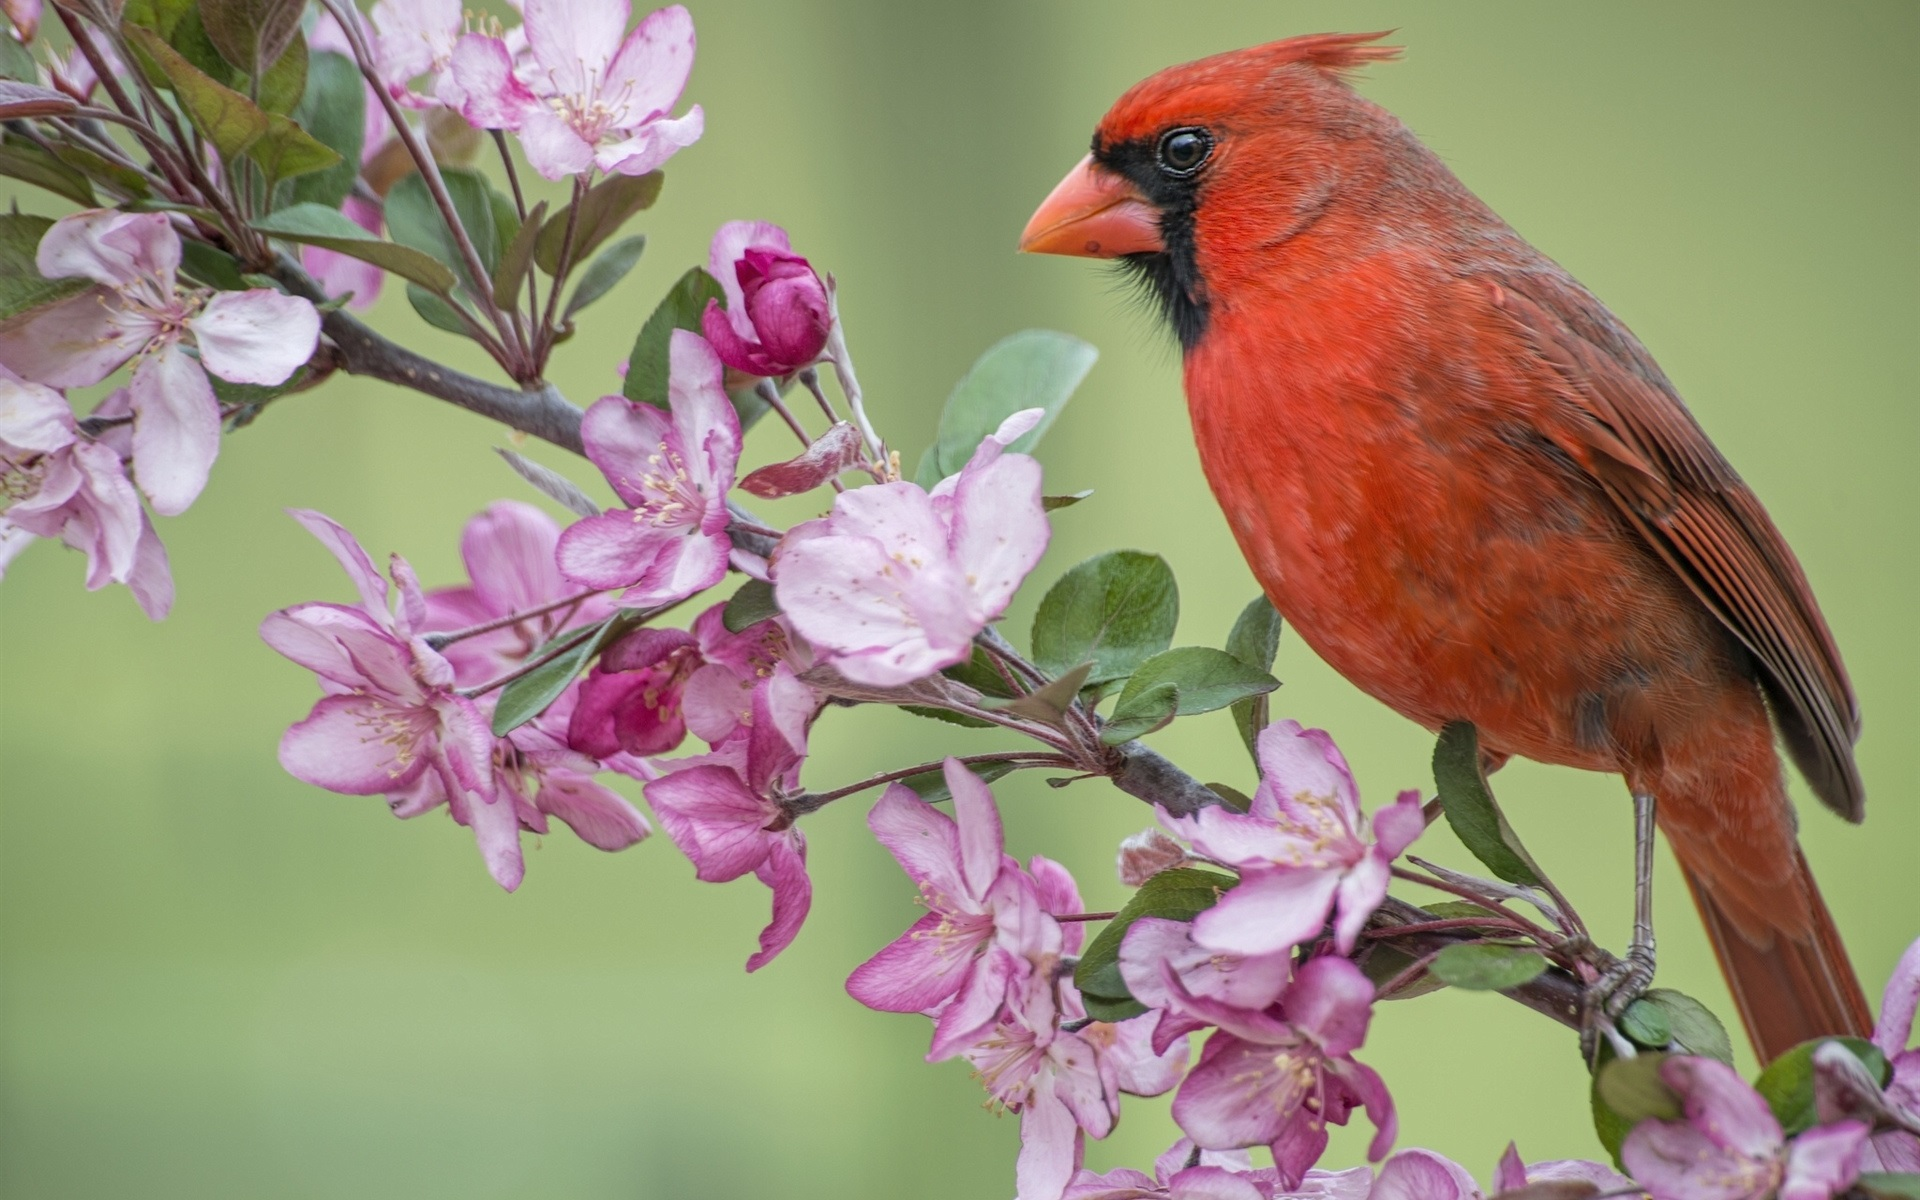 Wallpaper Red Cardinal Bird Apple Tree Flowers Blossom Spring